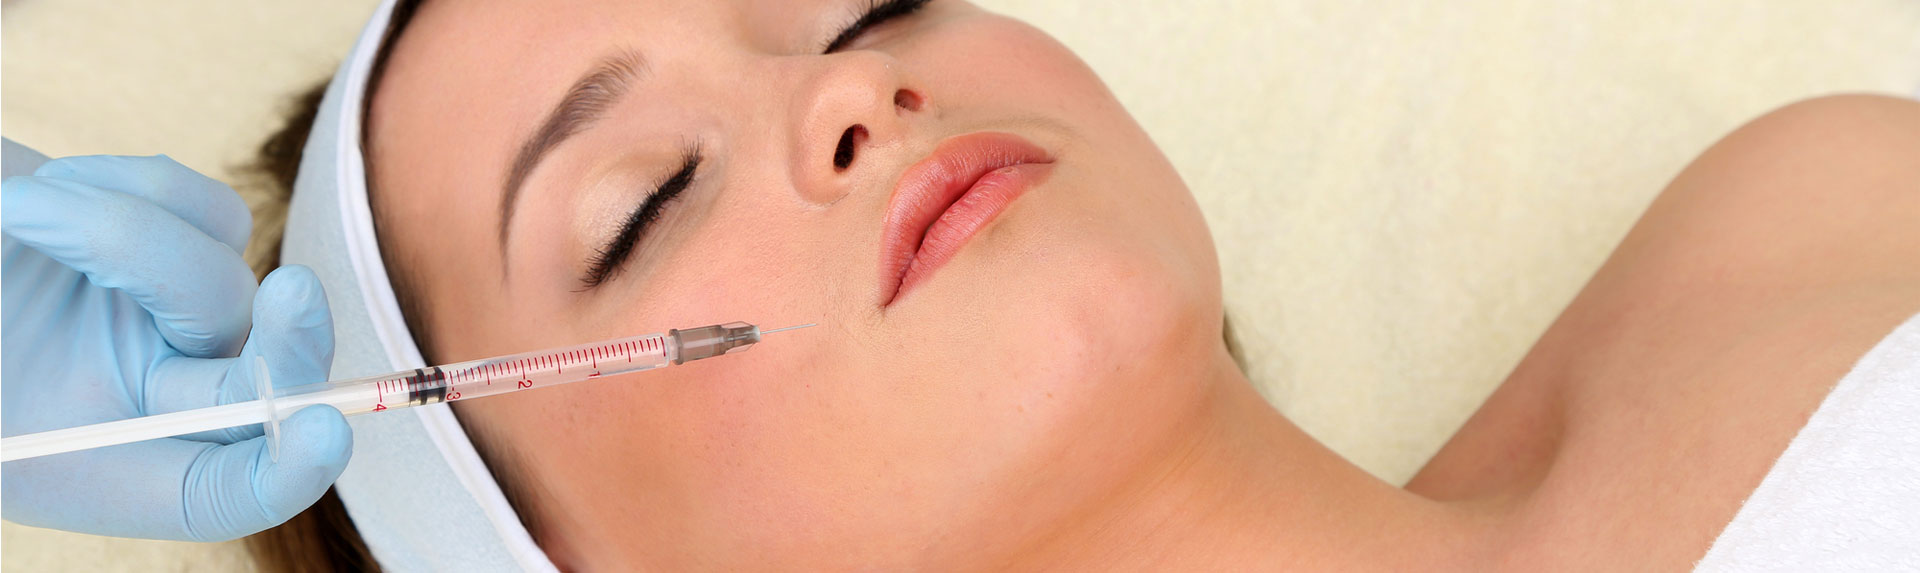 Young woman receiving botox injection